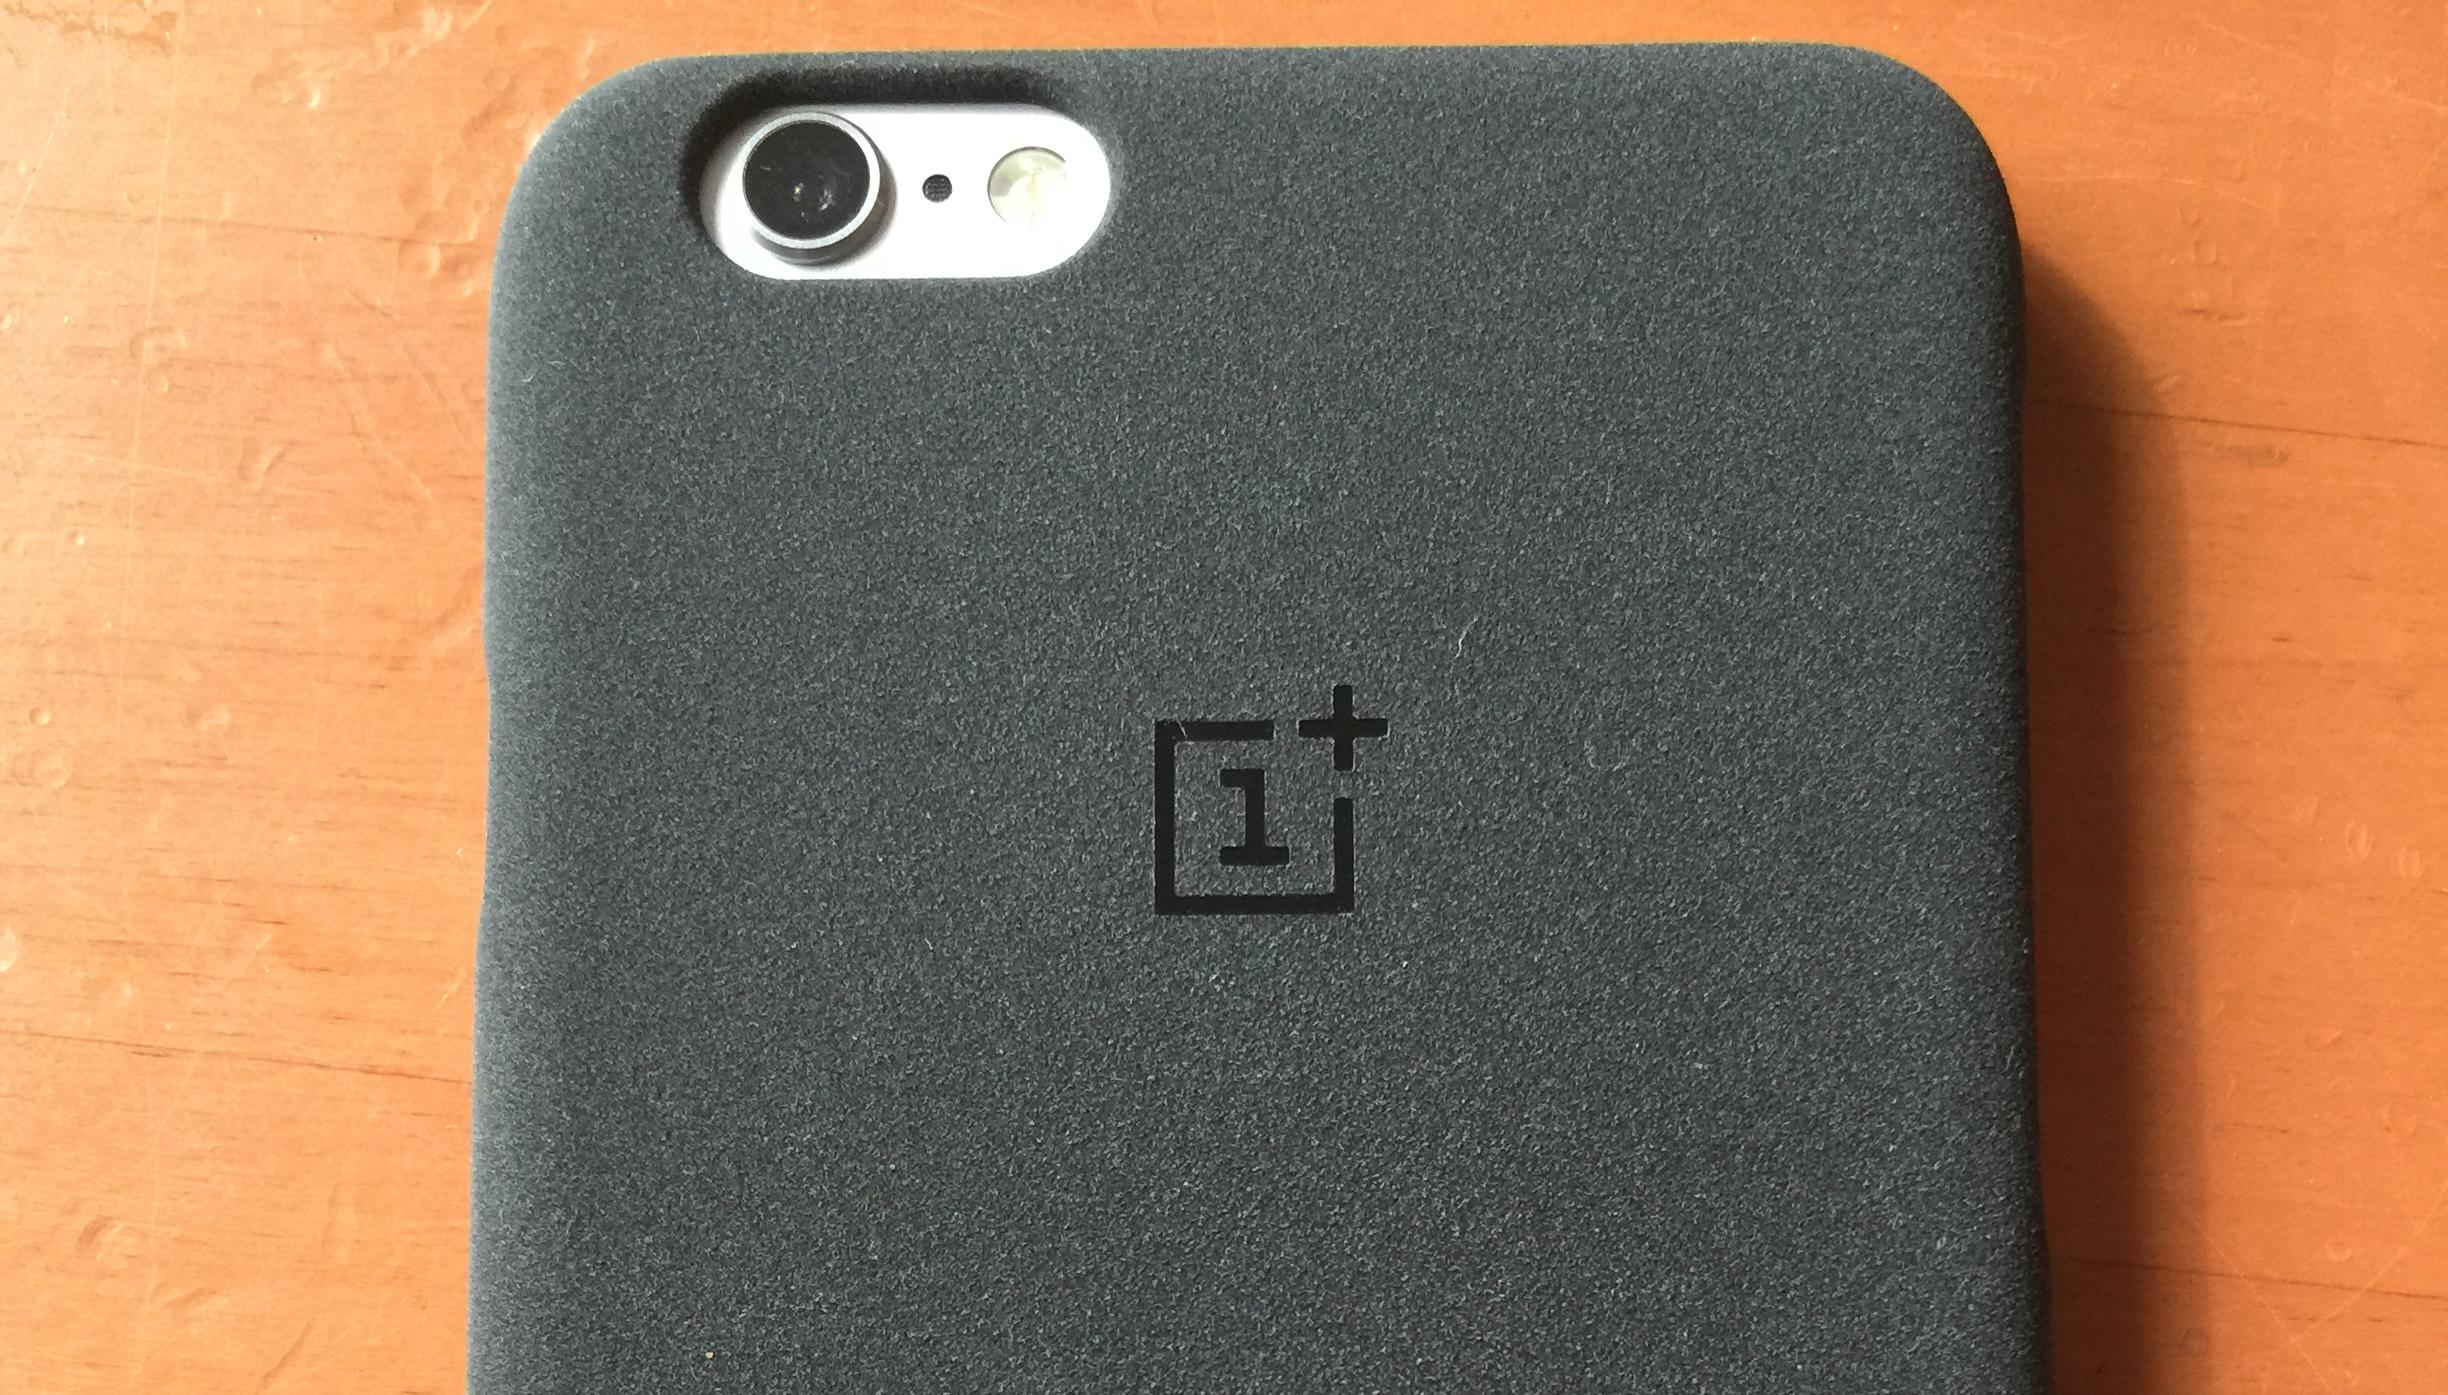 newest d4adf 4167f Android Phone Maker OnePlus Launches 'Sandstone' iPhone Case Just In ...